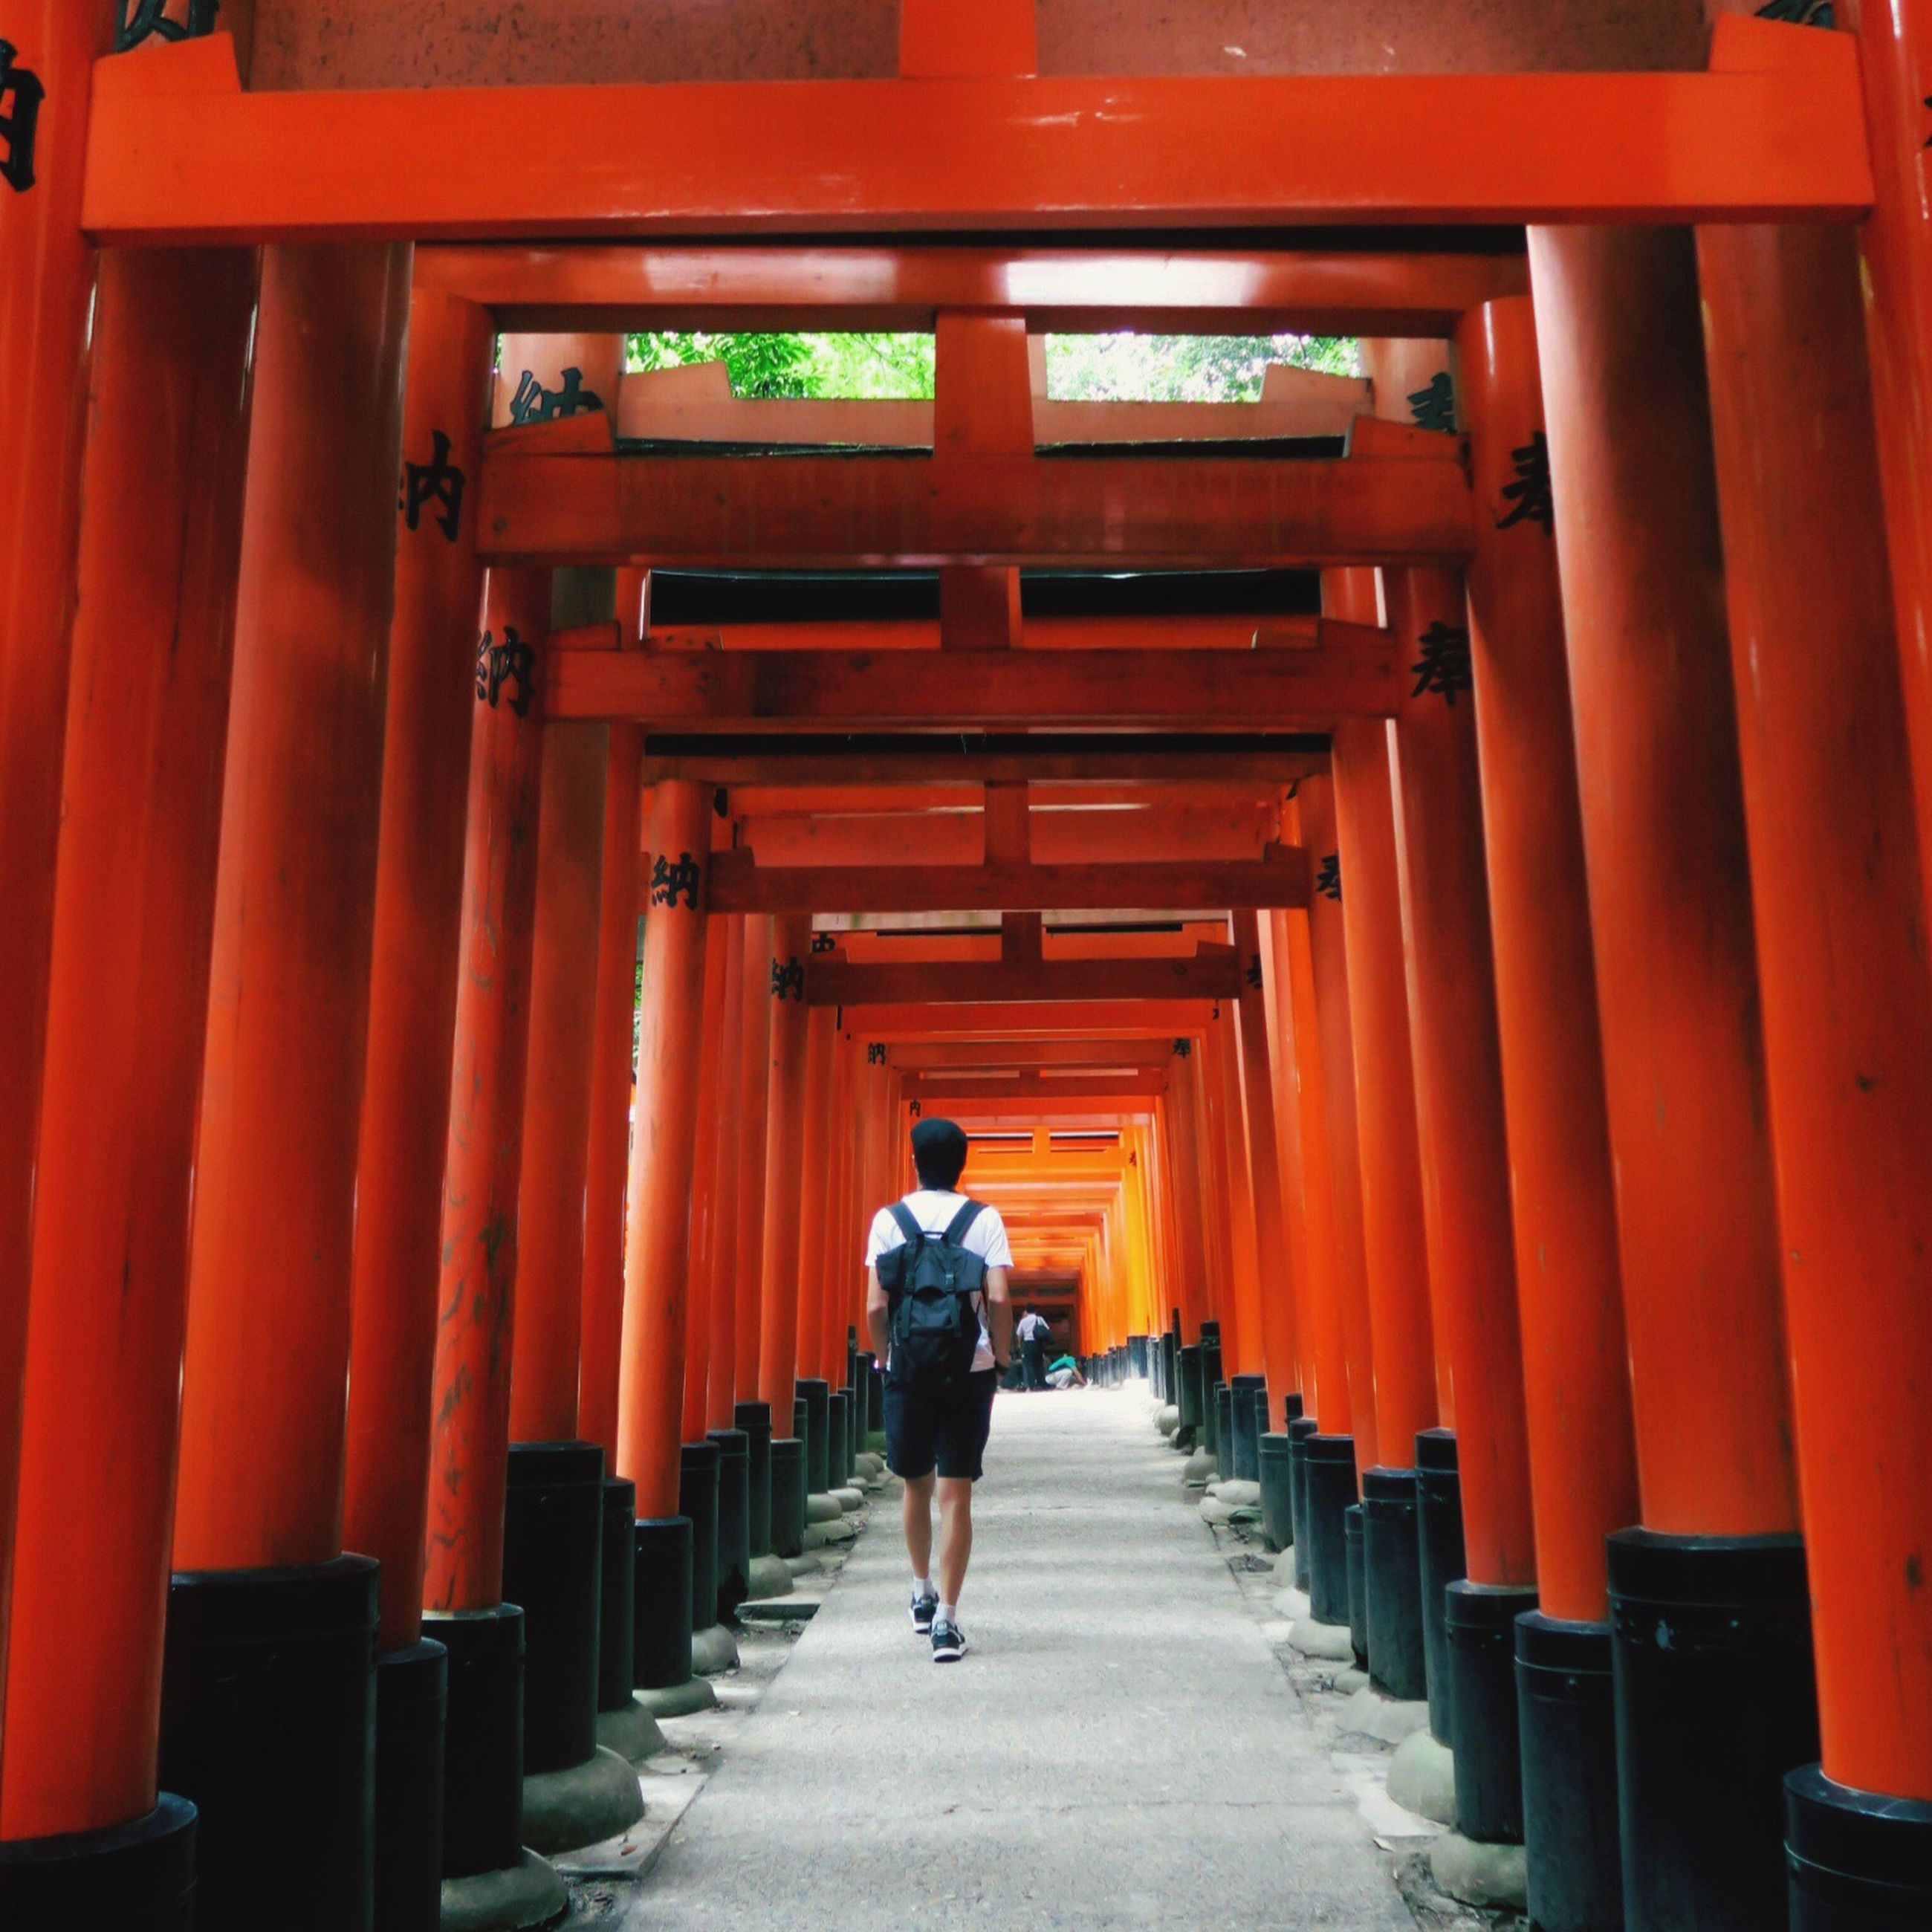 the way forward, built structure, architecture, in a row, men, rear view, walking, lifestyles, orange color, person, red, building exterior, full length, diminishing perspective, religion, temple - building, leisure activity, architectural column